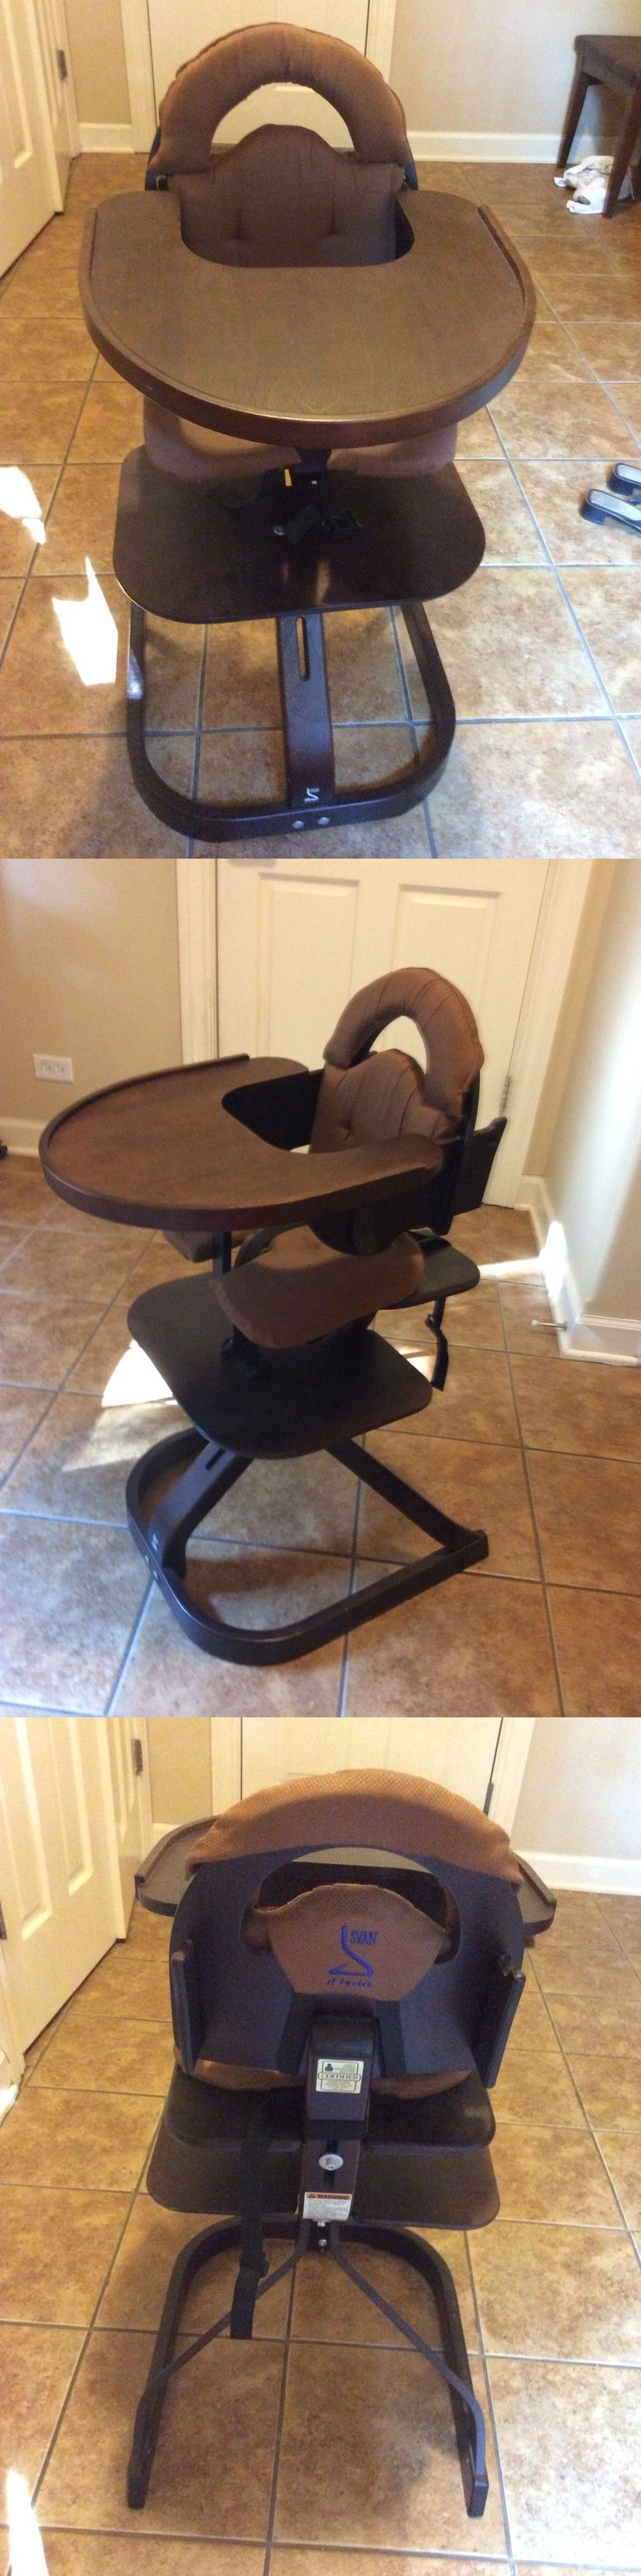 High Chairs 2986: Svan Sweden Wooden Baby High Chair New Without Tags -> BUY IT NOW ONLY: $149 on eBay!